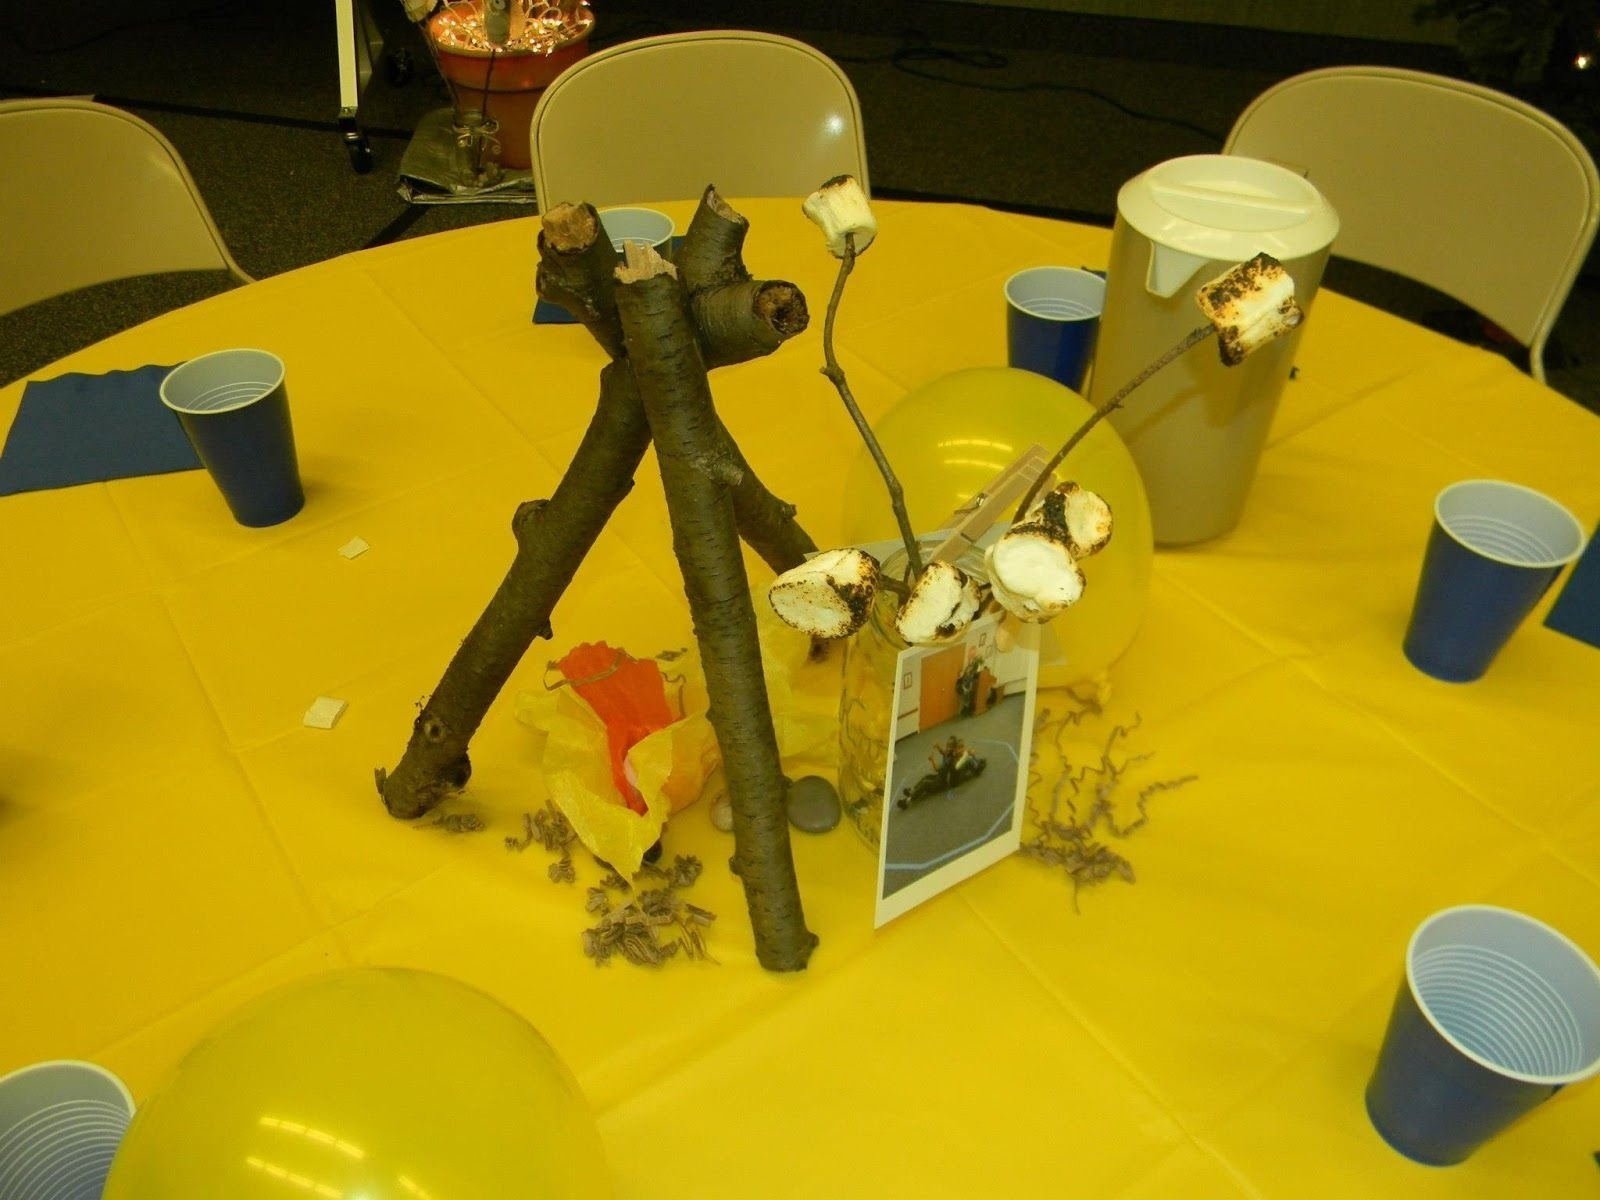 10 Fantastic Cub Scout Blue And Gold Ideas cub scout centerpiece ideas the wolf and bear dens displayed their